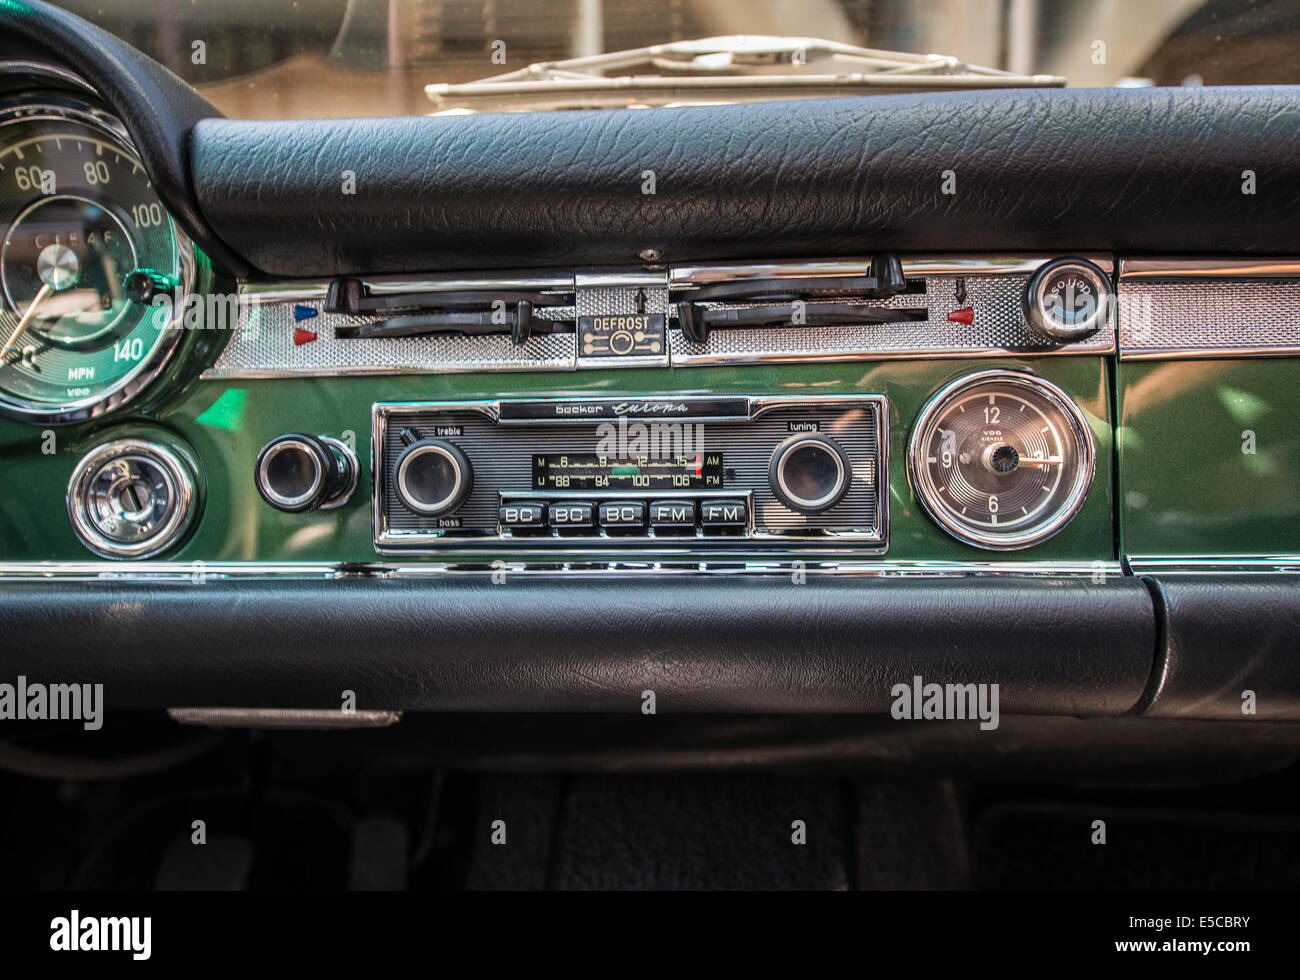 Vintage Car Radio Stock Photos & Vintage Car Radio Stock Images - Alamy